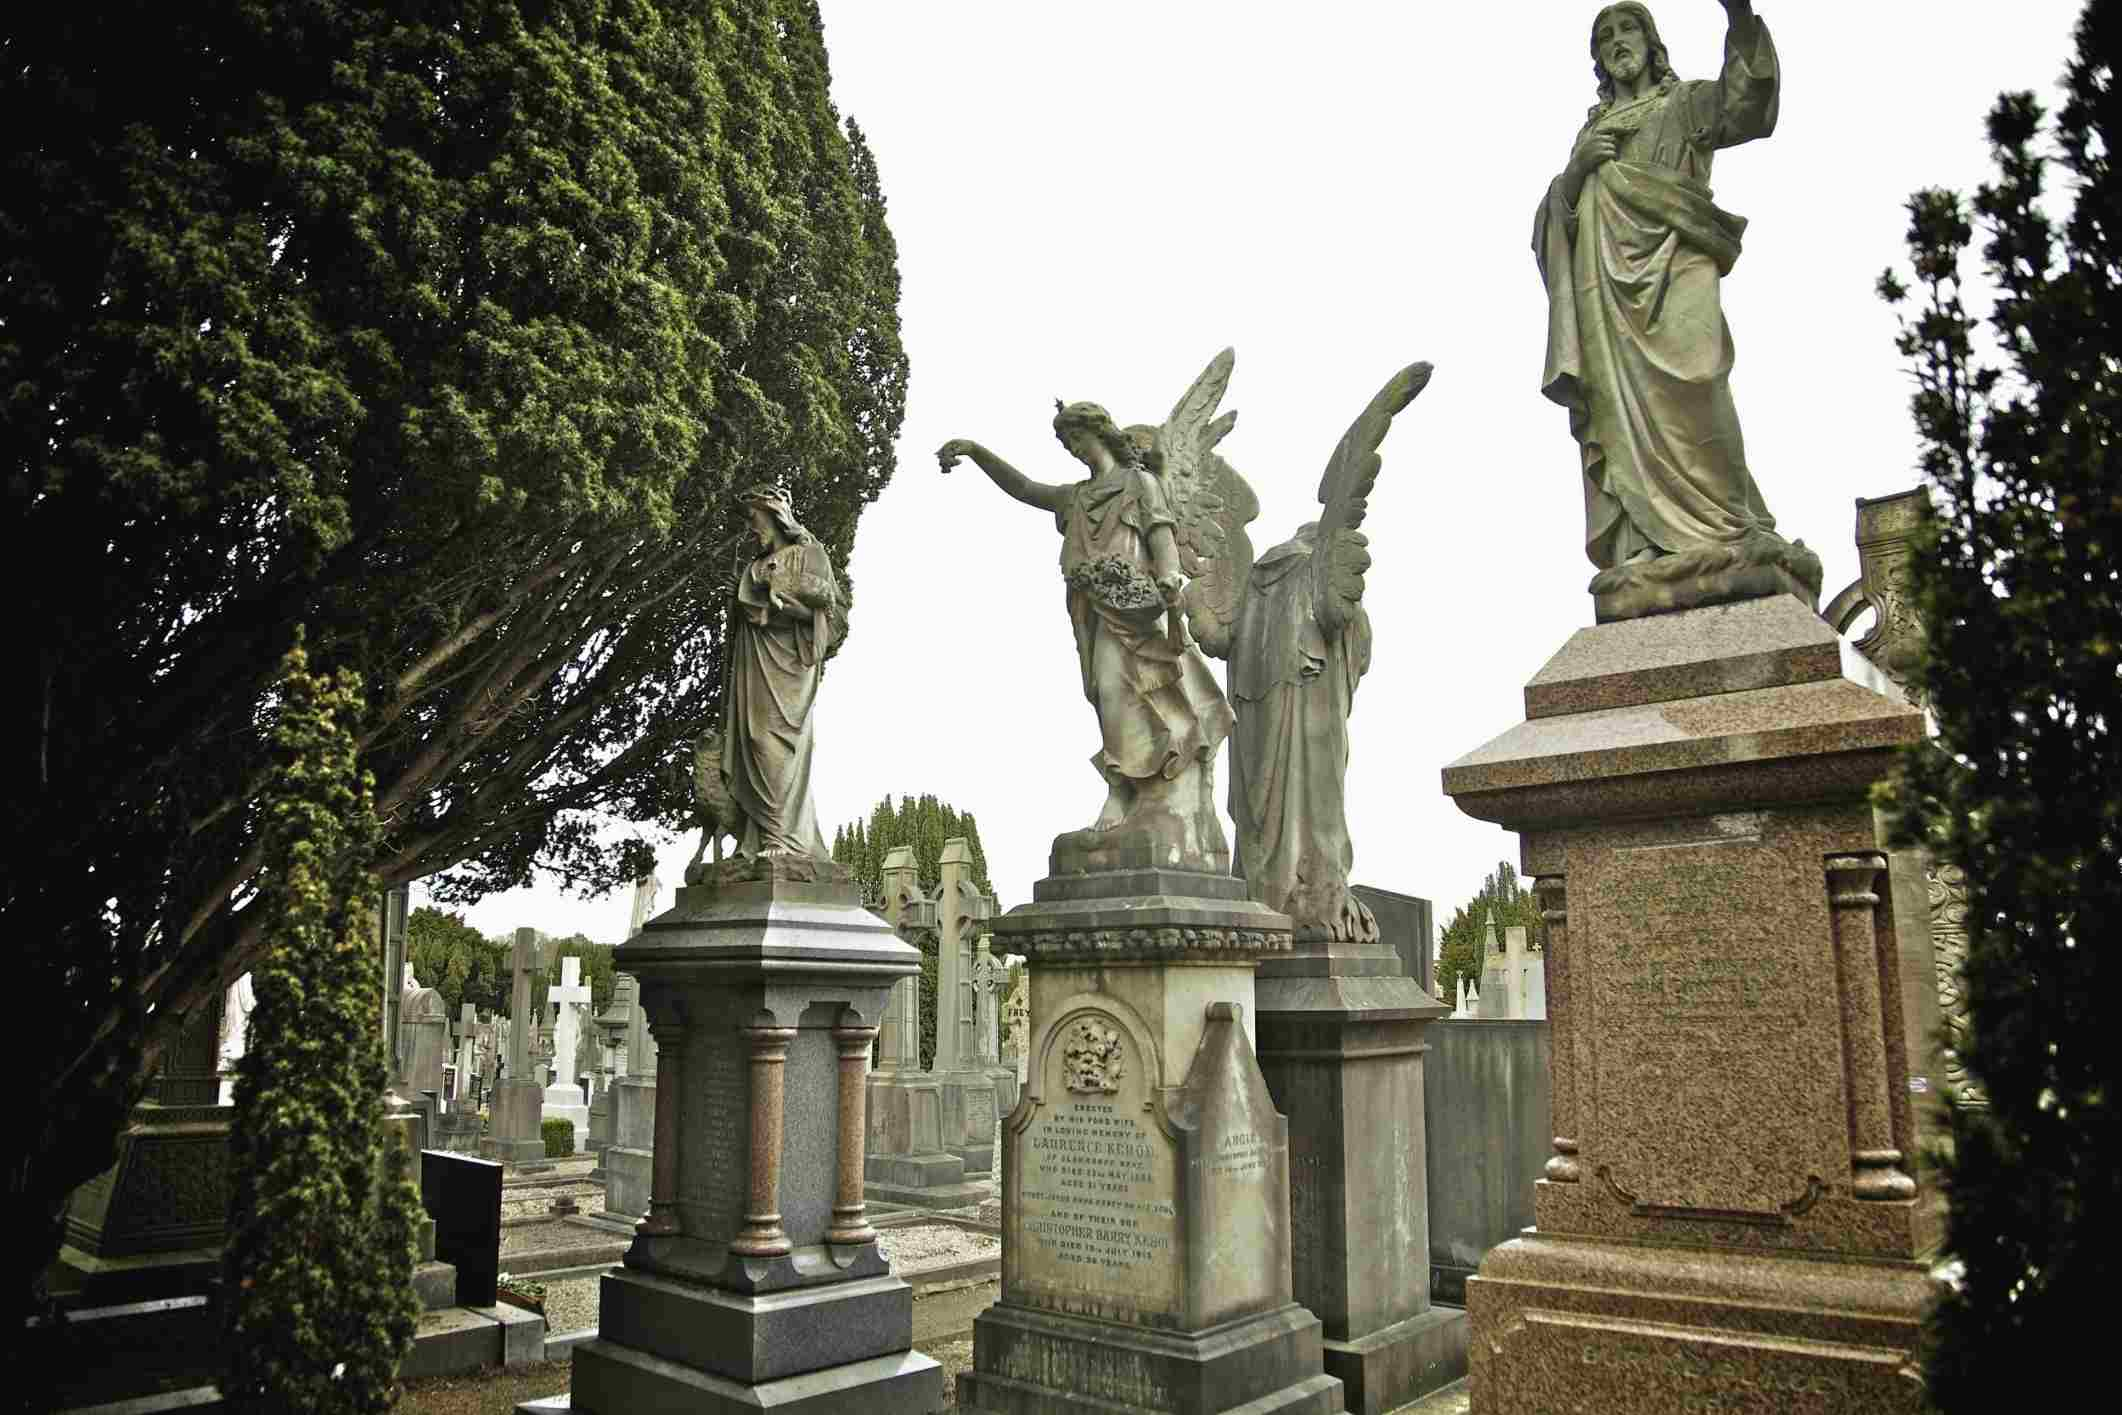 Ornate tombstones at Glasnevin Cemetery in Dublin, Ireland.